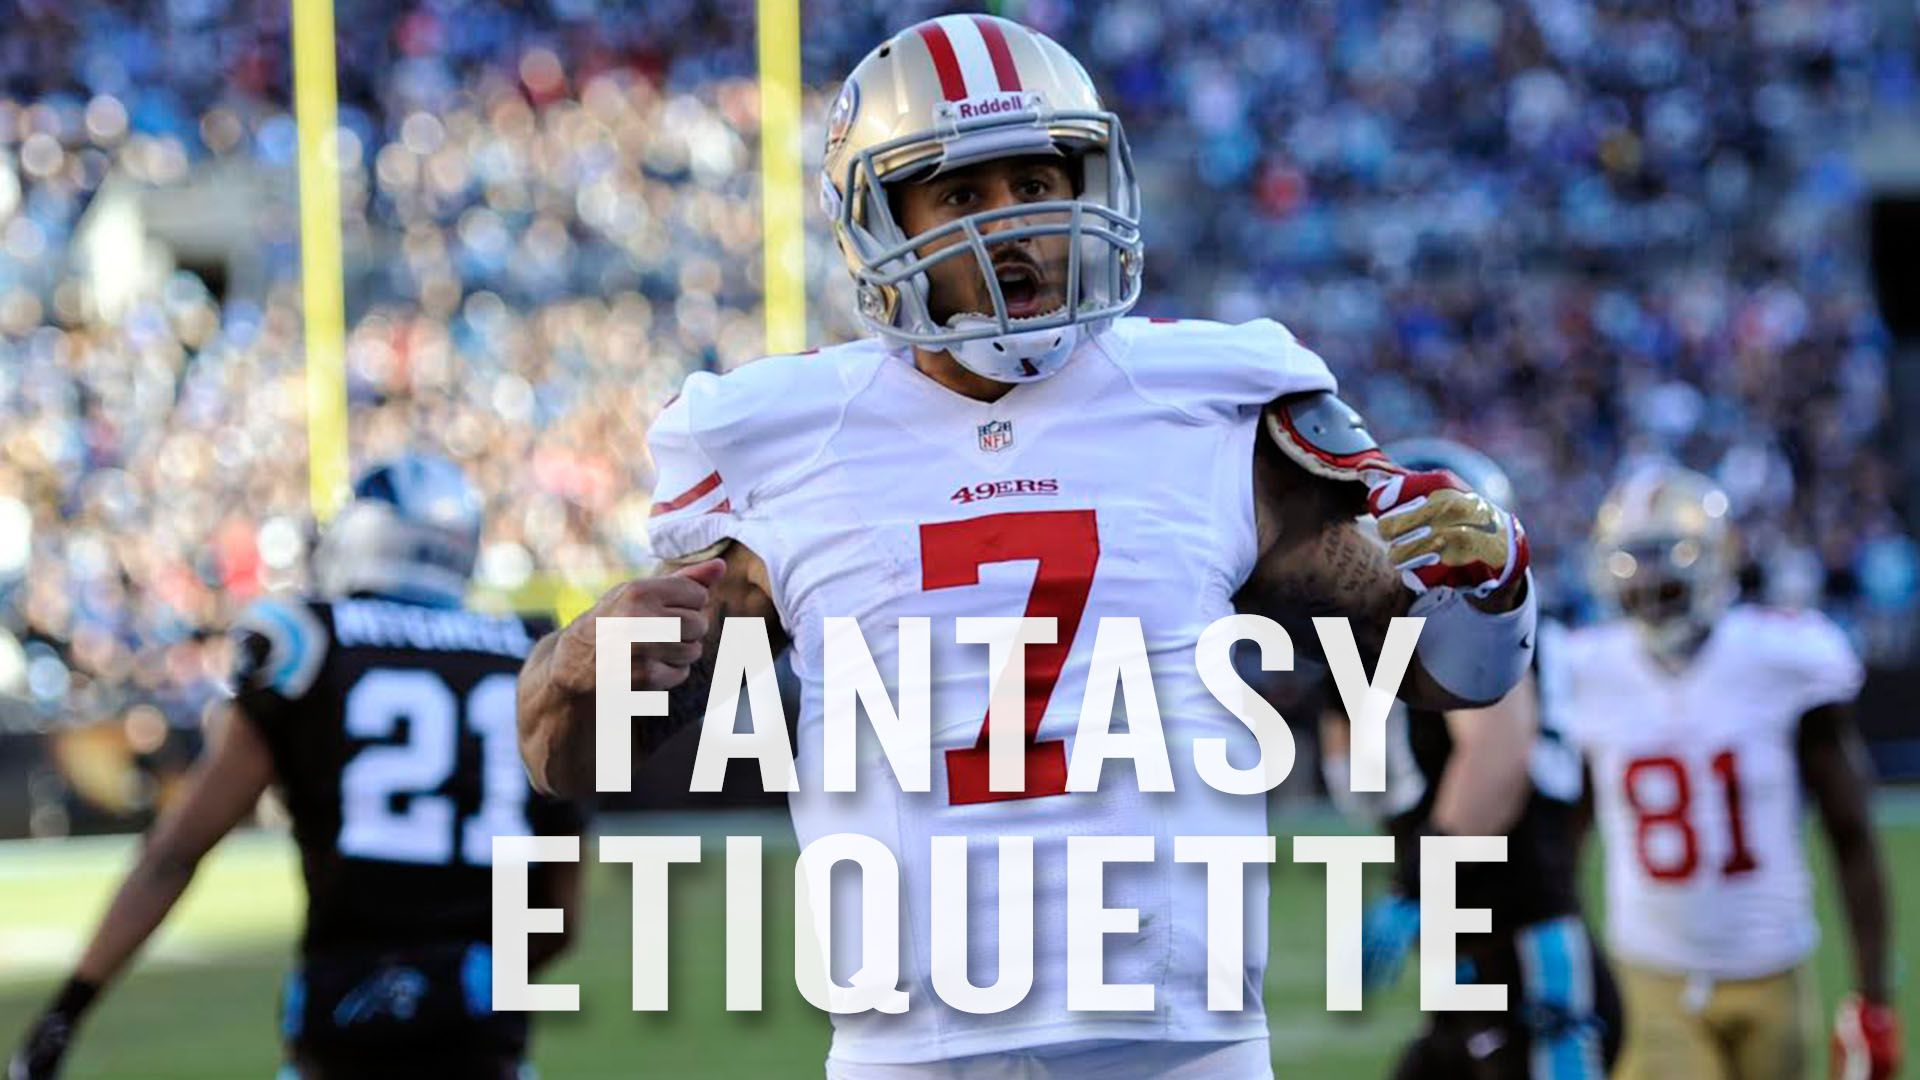 fantasy football wide receiver sleepers to consider